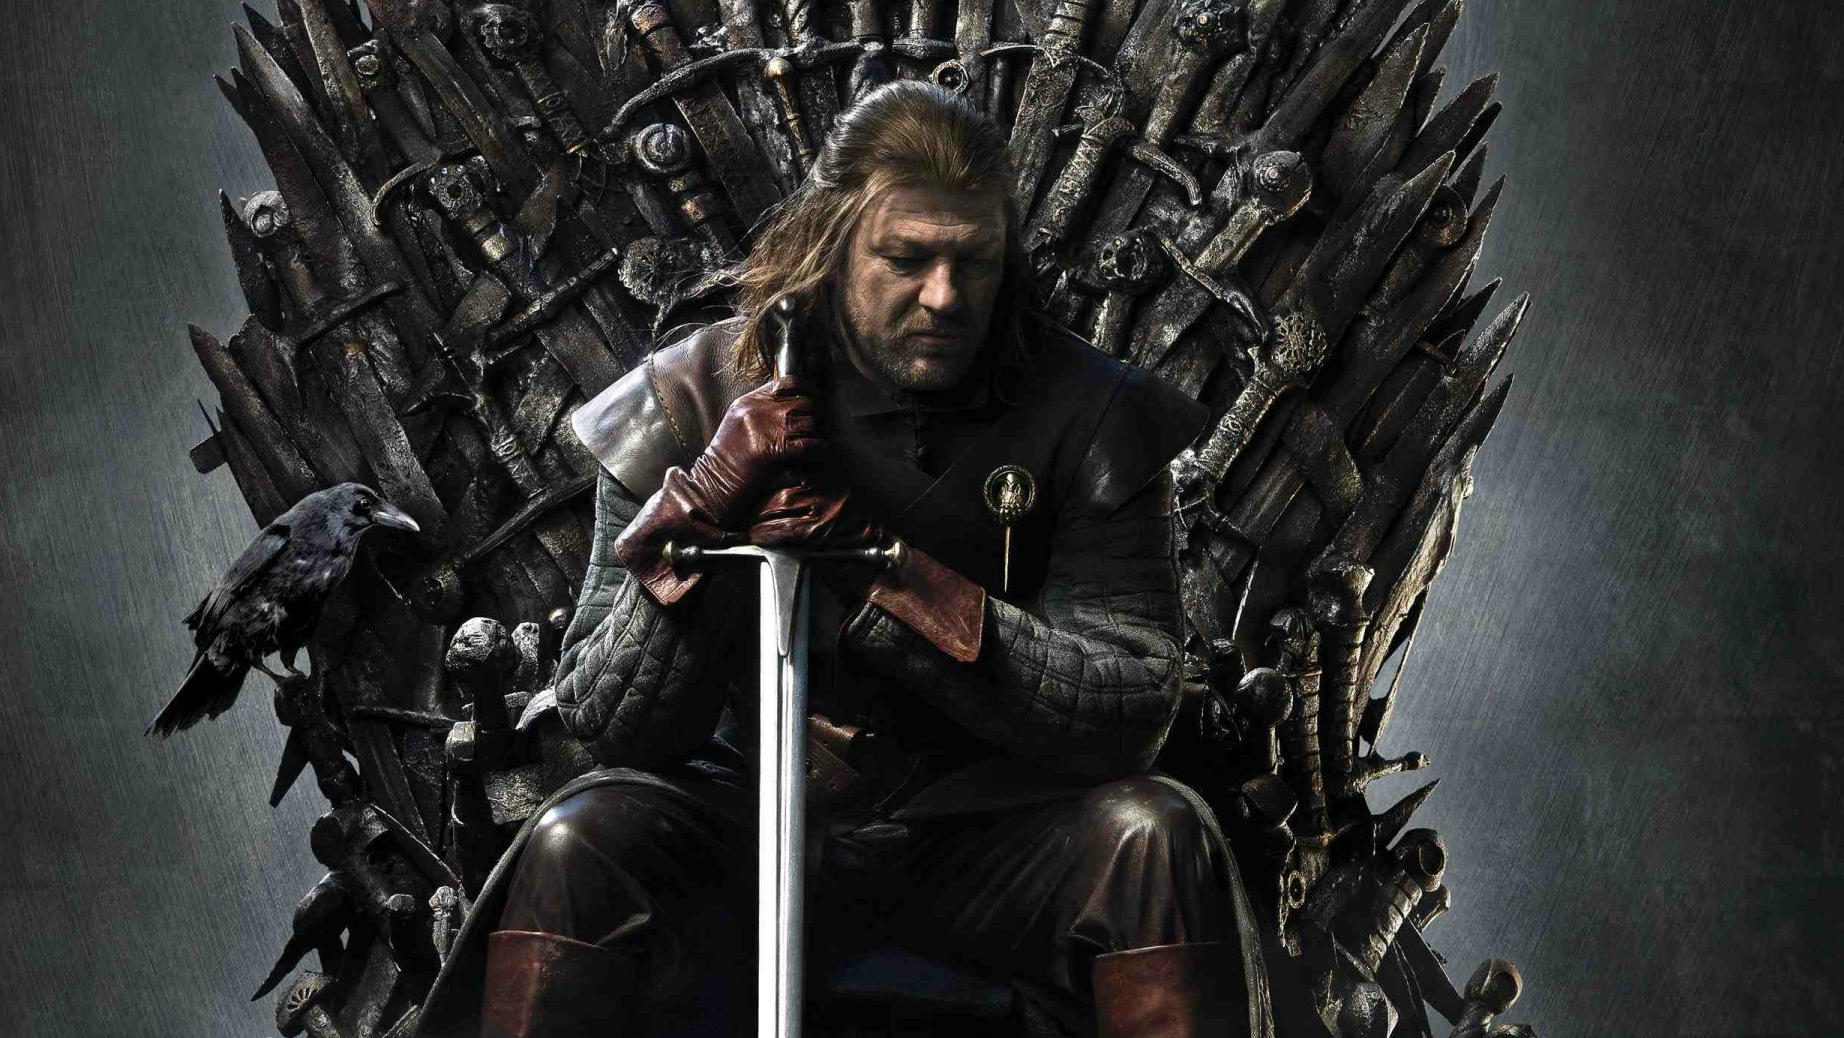 Game of Thrones Sean Bean Eddard Ned Stark Sean Bean HBO